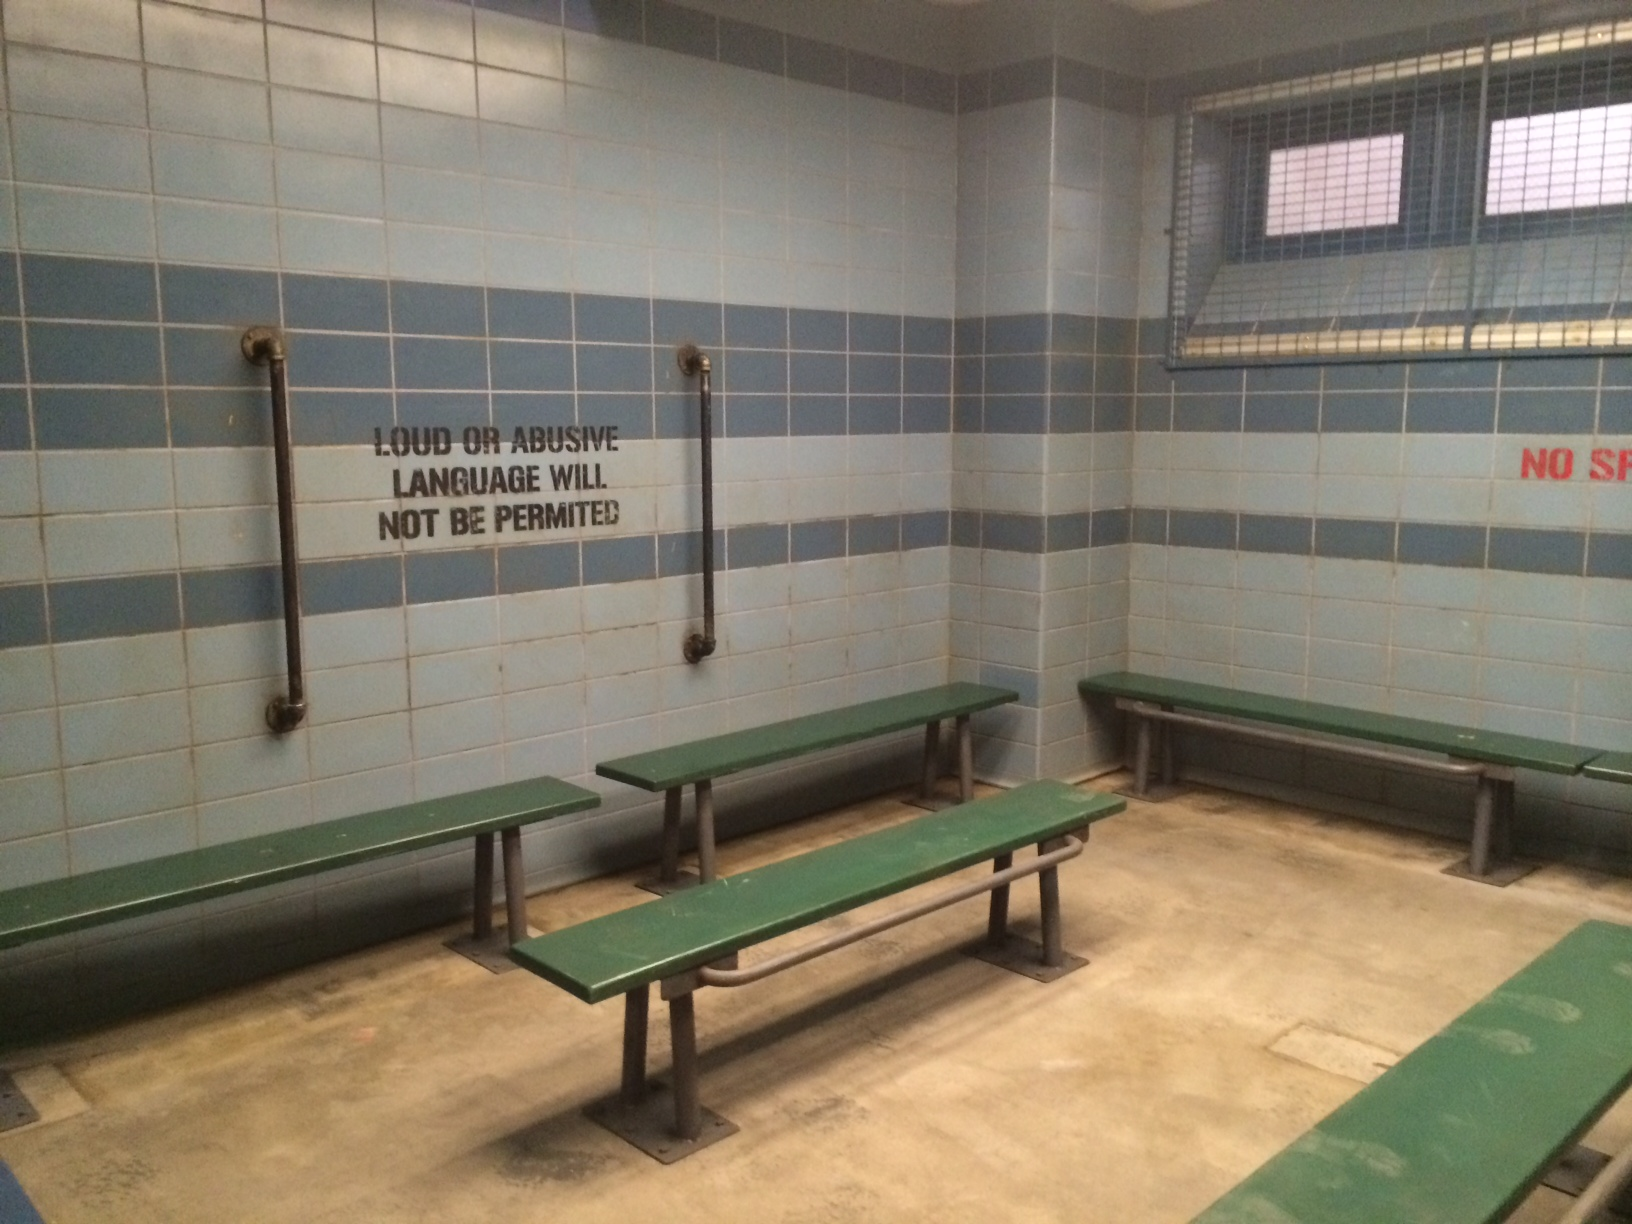 I haven't been in an actual holding cell, but this looks pretty accurate.